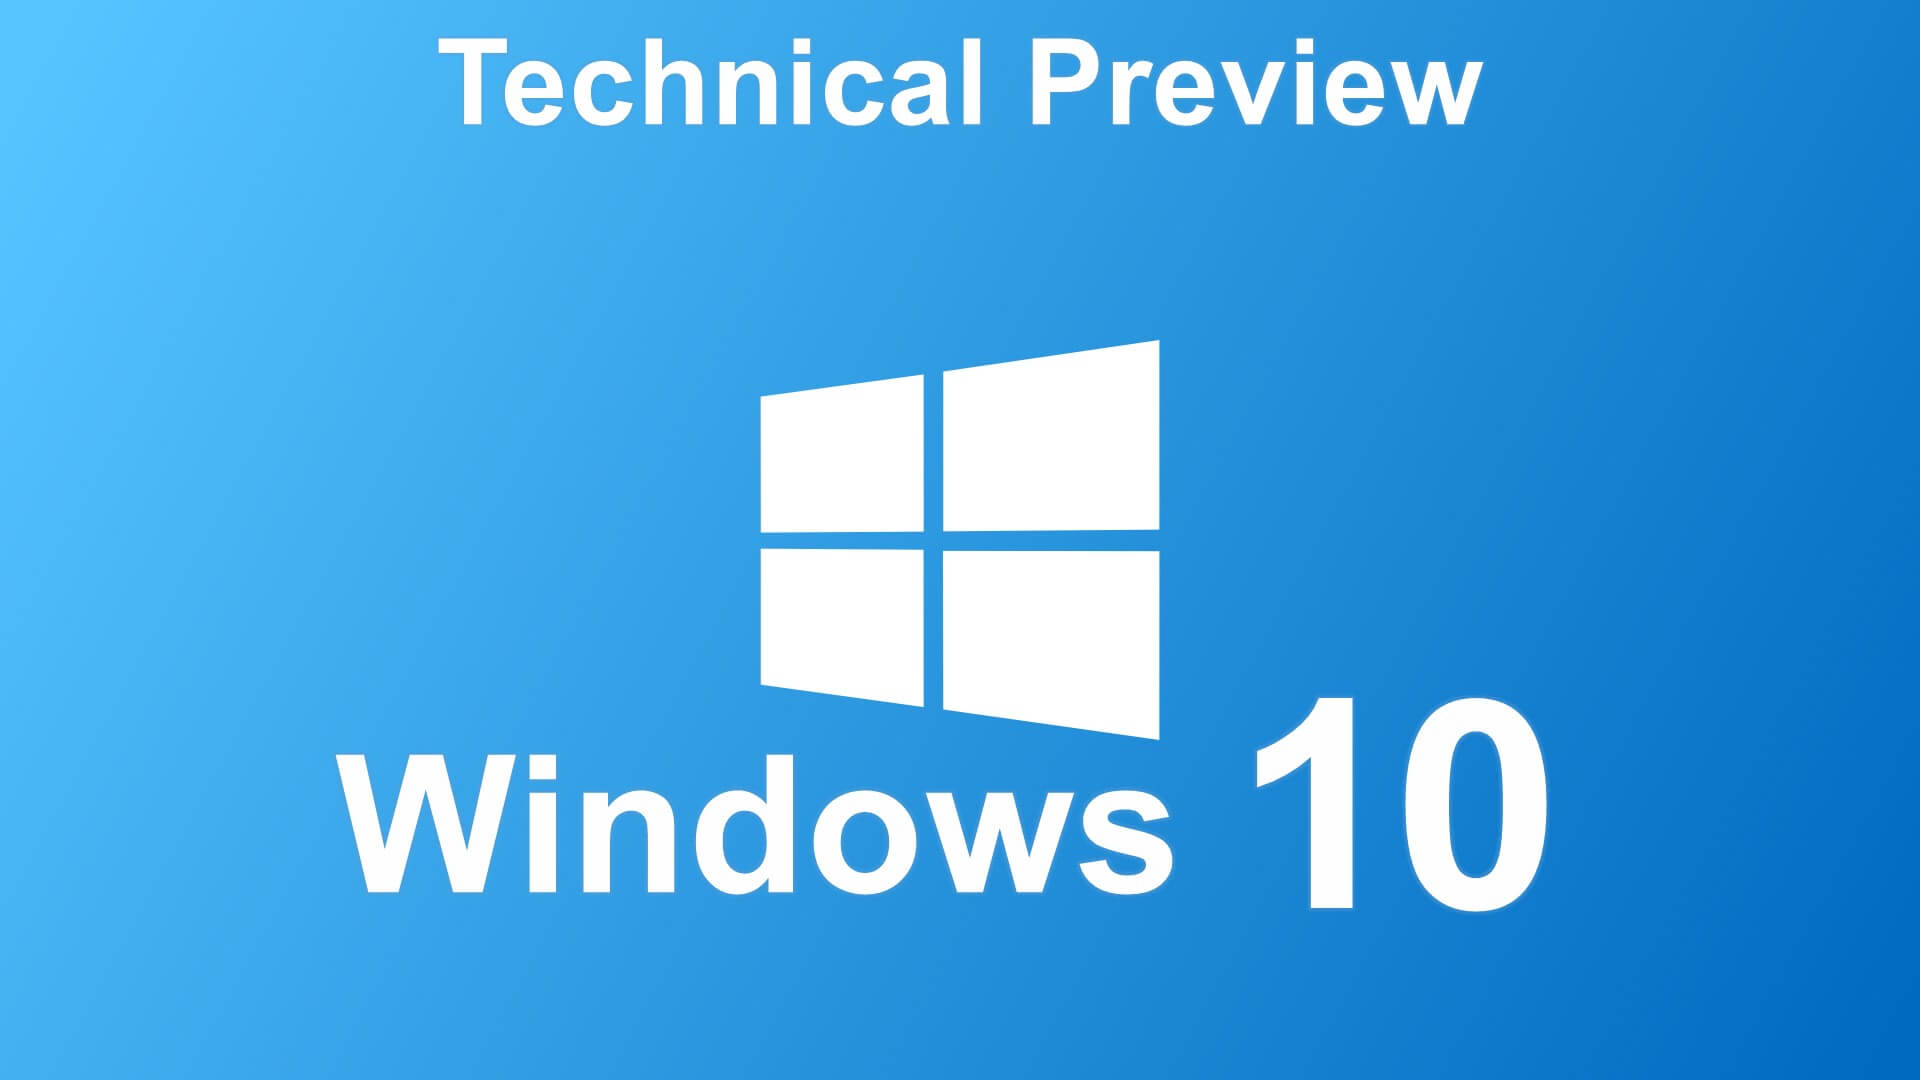 Windows 10 Technical Preview Build 10041 inl Key Free Download